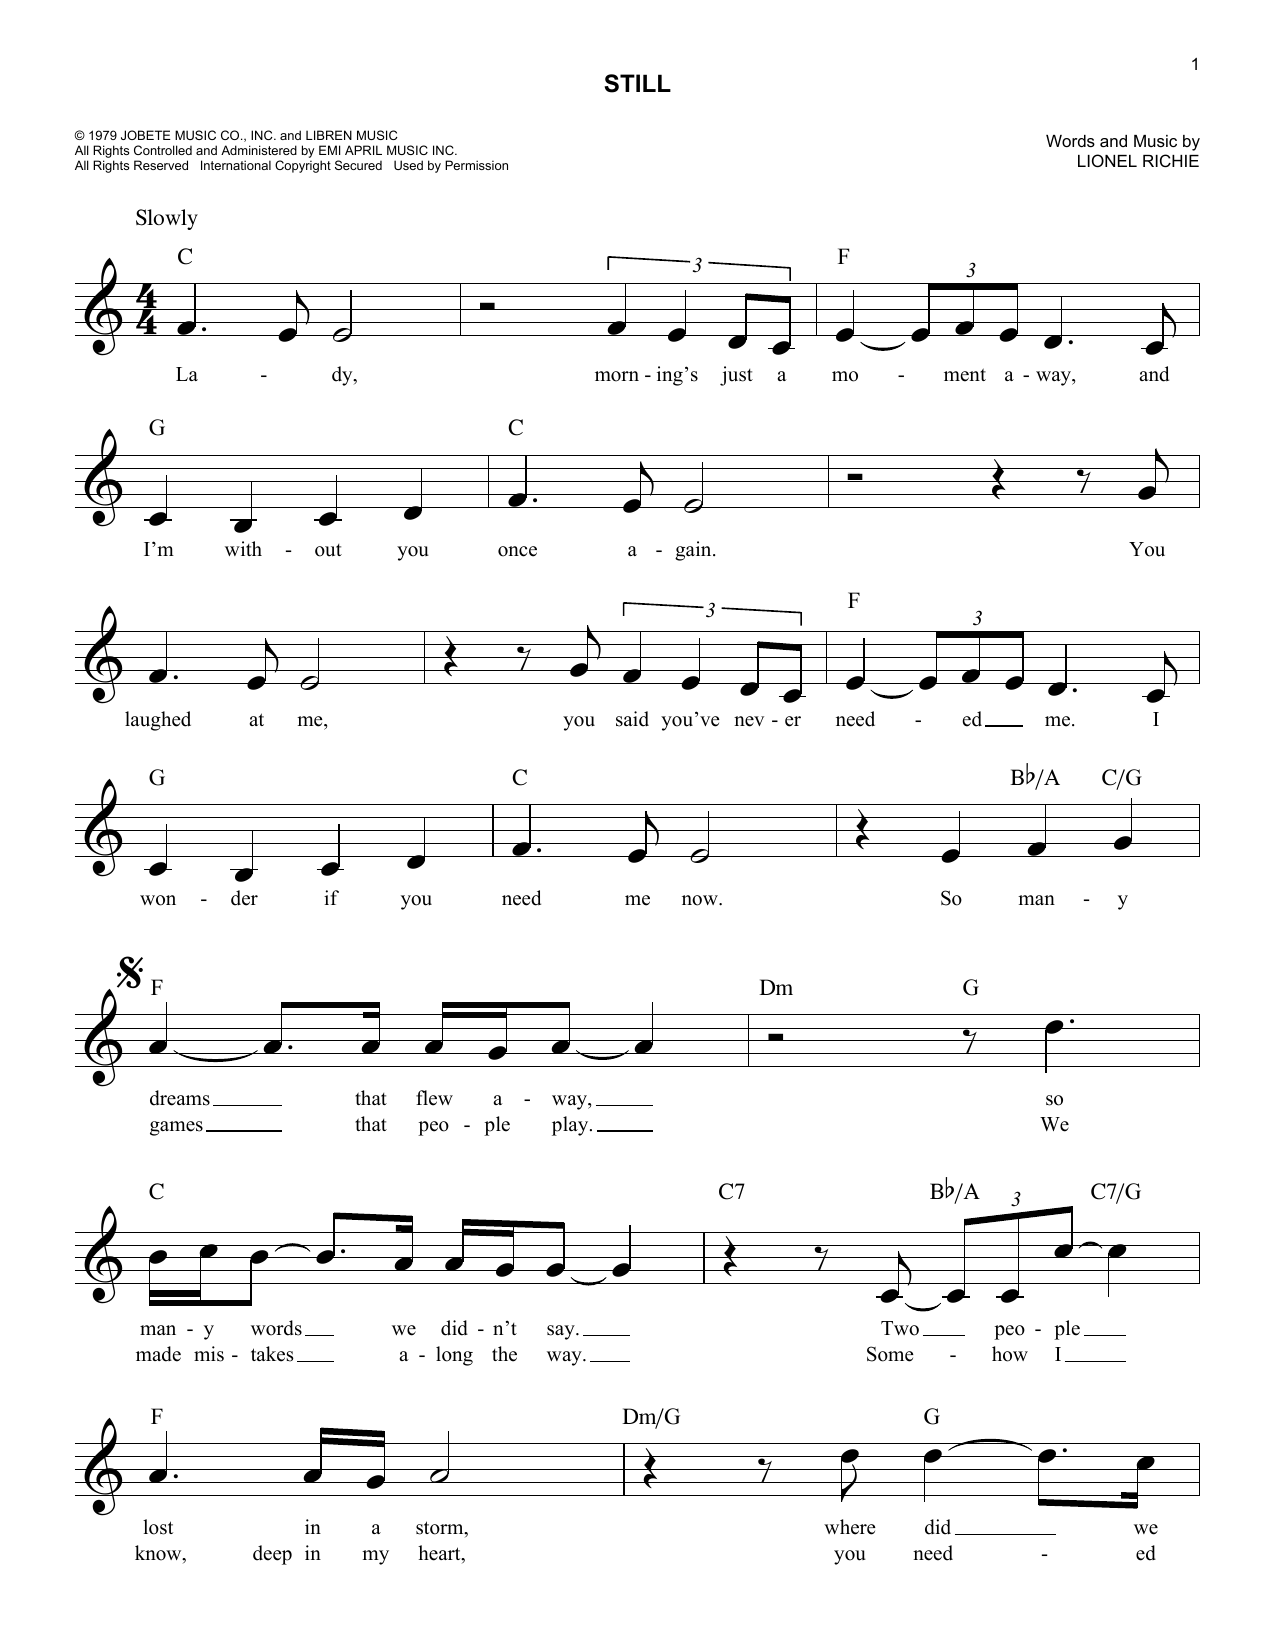 Still chords by the commodores melody line lyrics chords 187324 still sheet music hexwebz Image collections